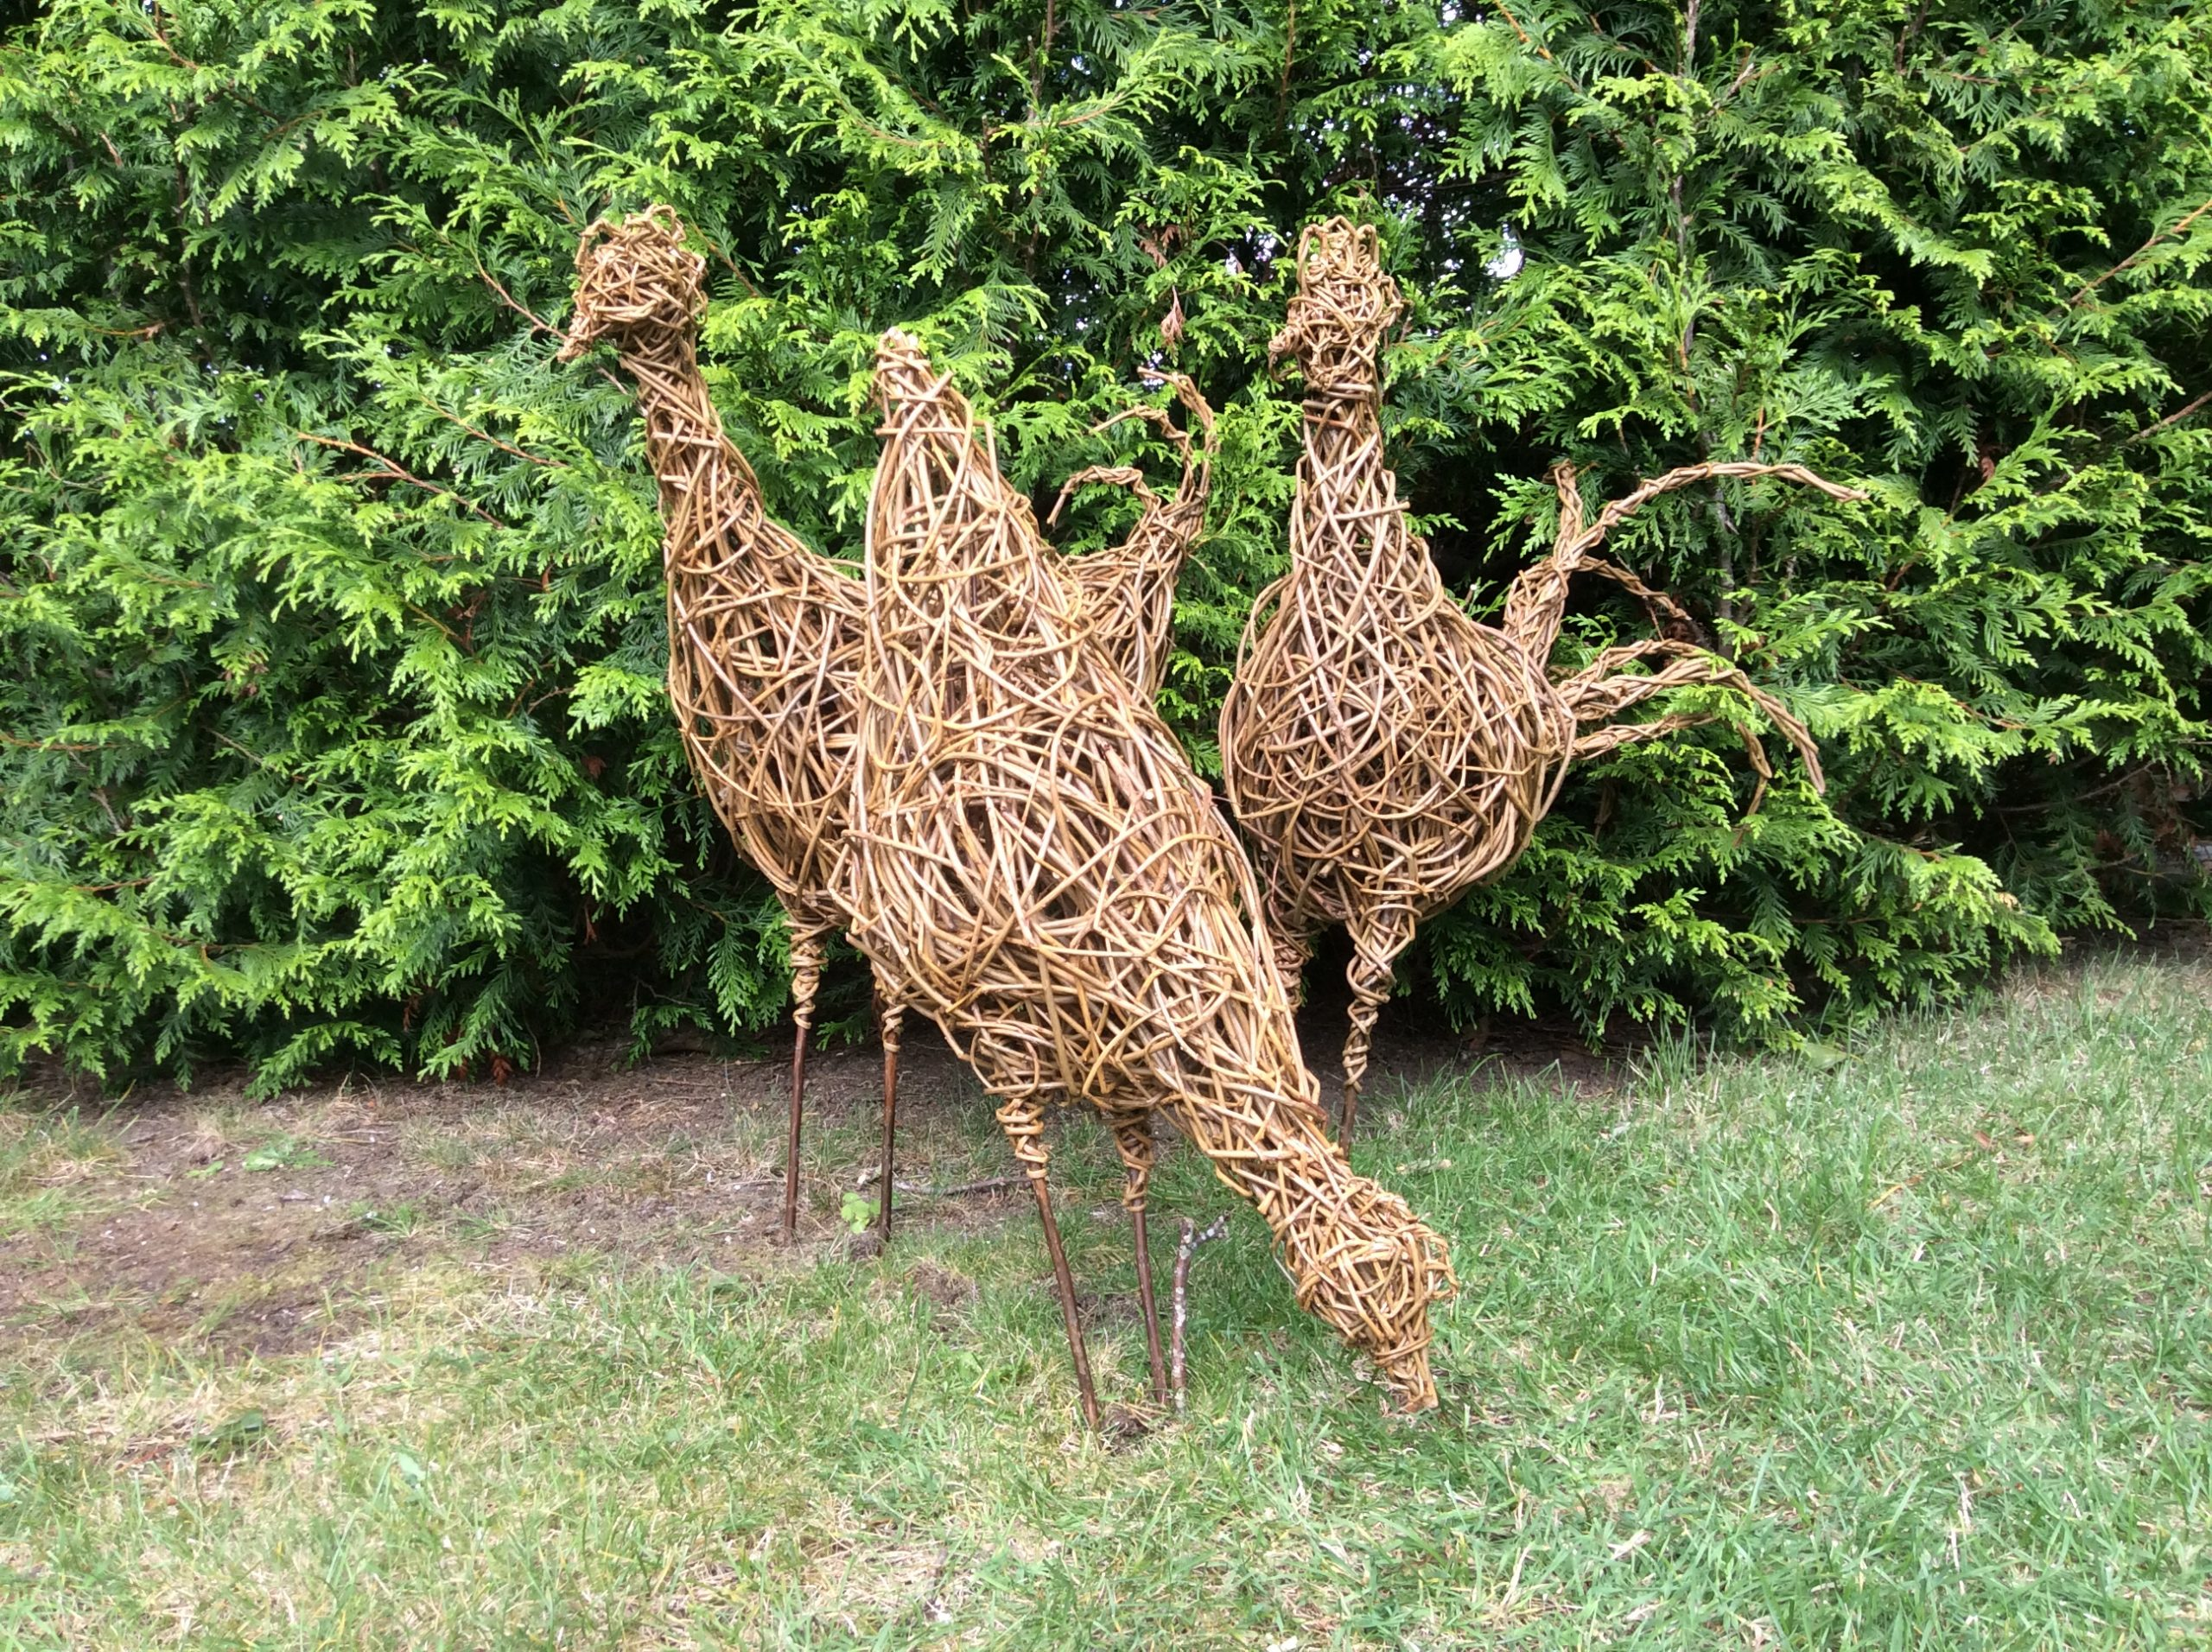 3 Willow Chickens